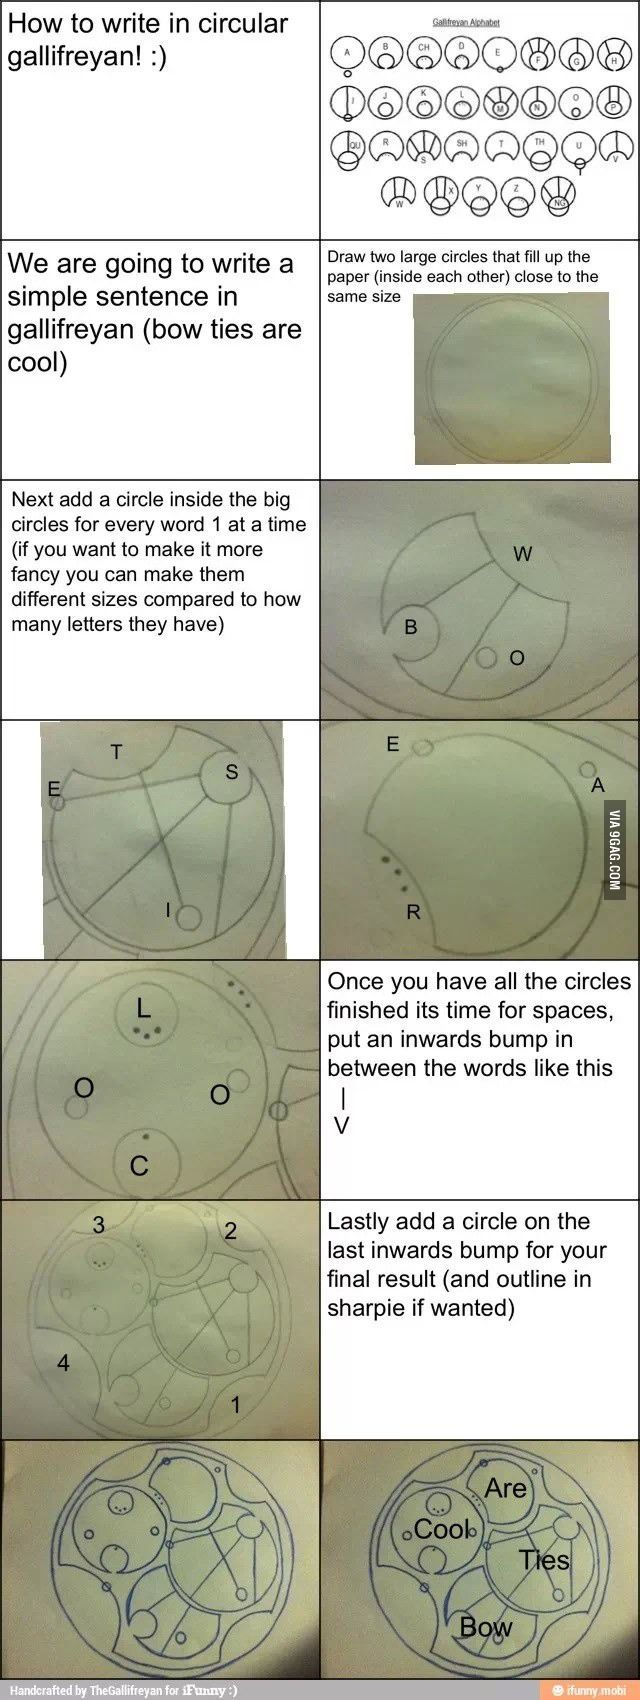 How to write Gallifreyan. MUST LEARN THIS!